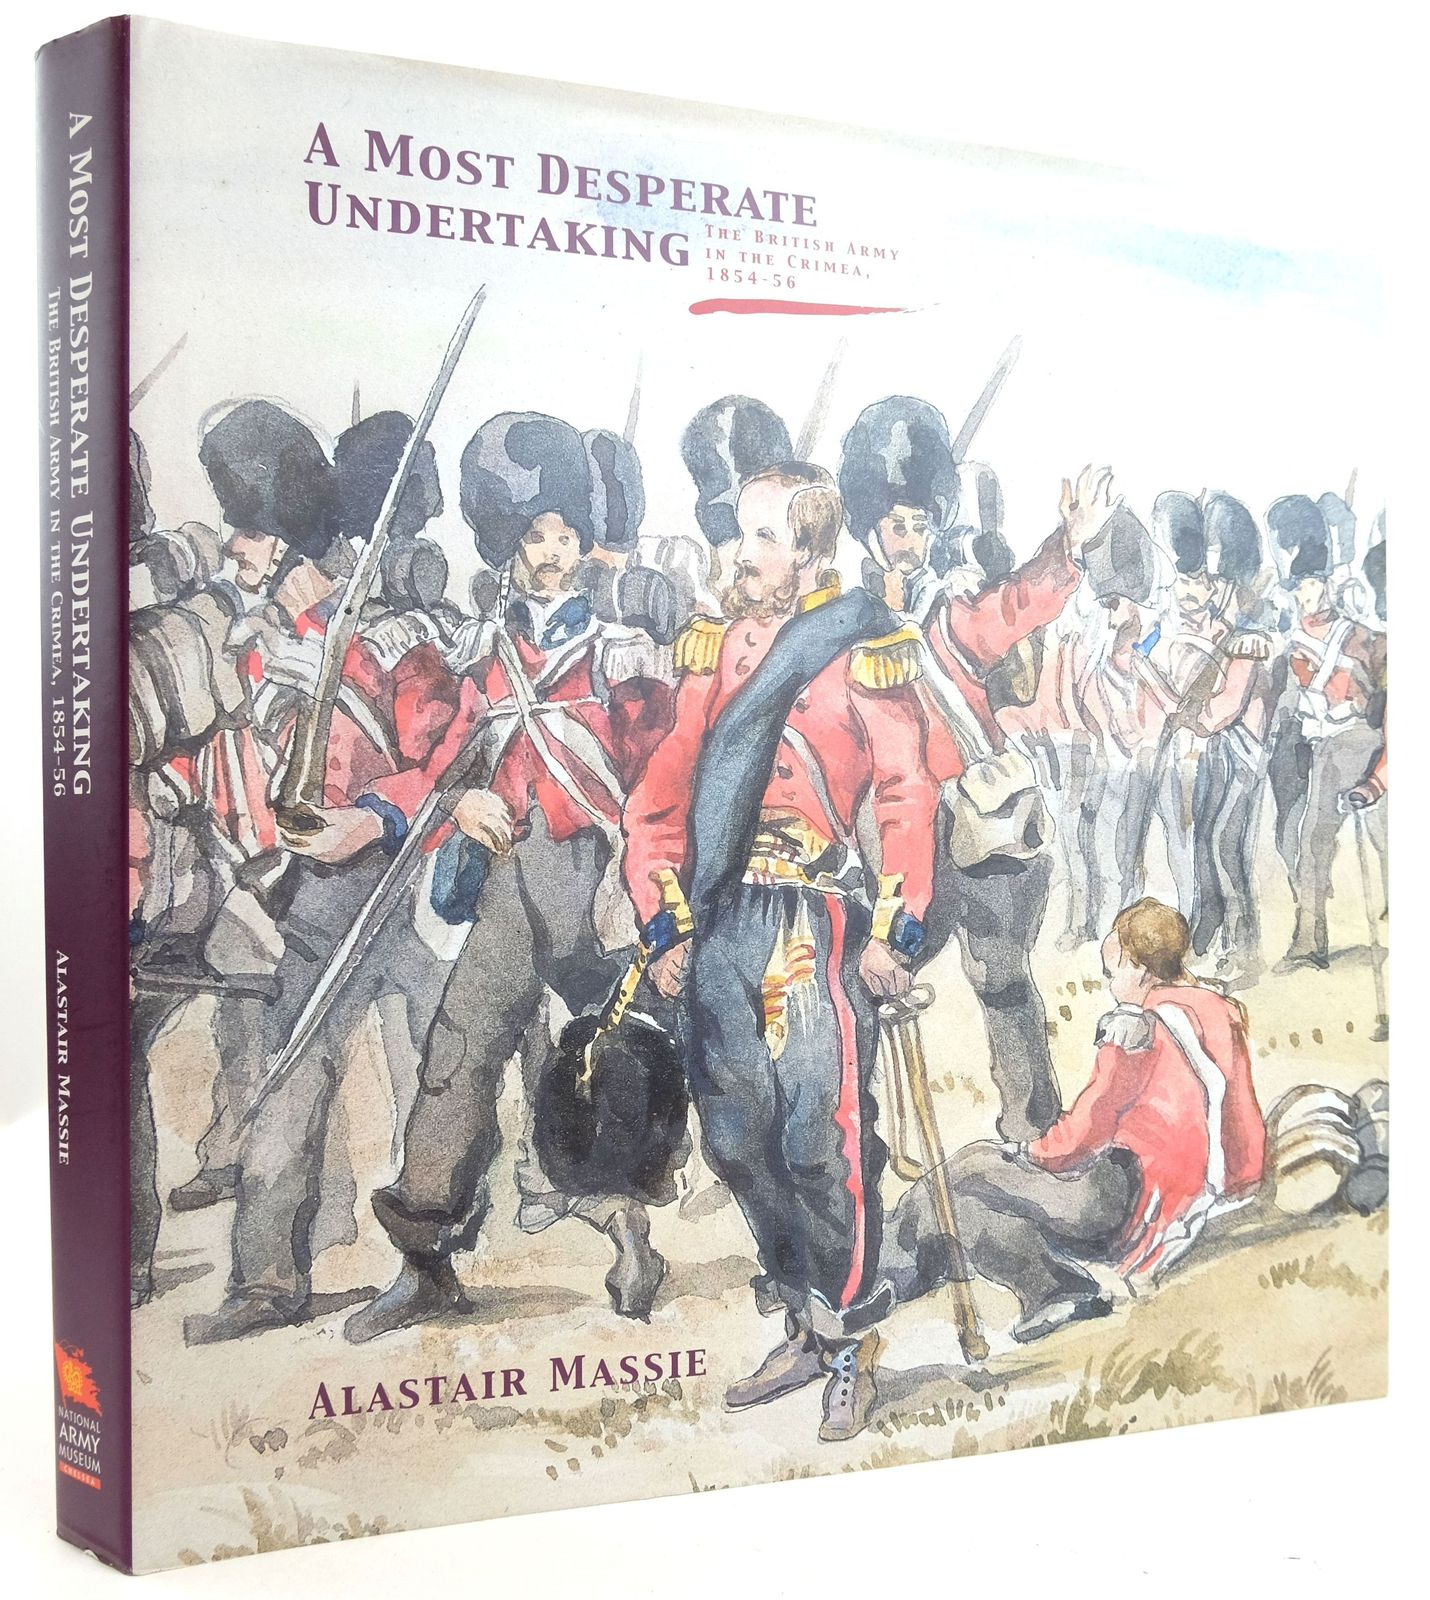 Photo of A MOST DESPERATE UNDERTAKING: THE BRITISH ARMY IN THE CRIMEA, 1854-56 written by Massie, Alastair published by National Army Museum (STOCK CODE: 1819865)  for sale by Stella & Rose's Books